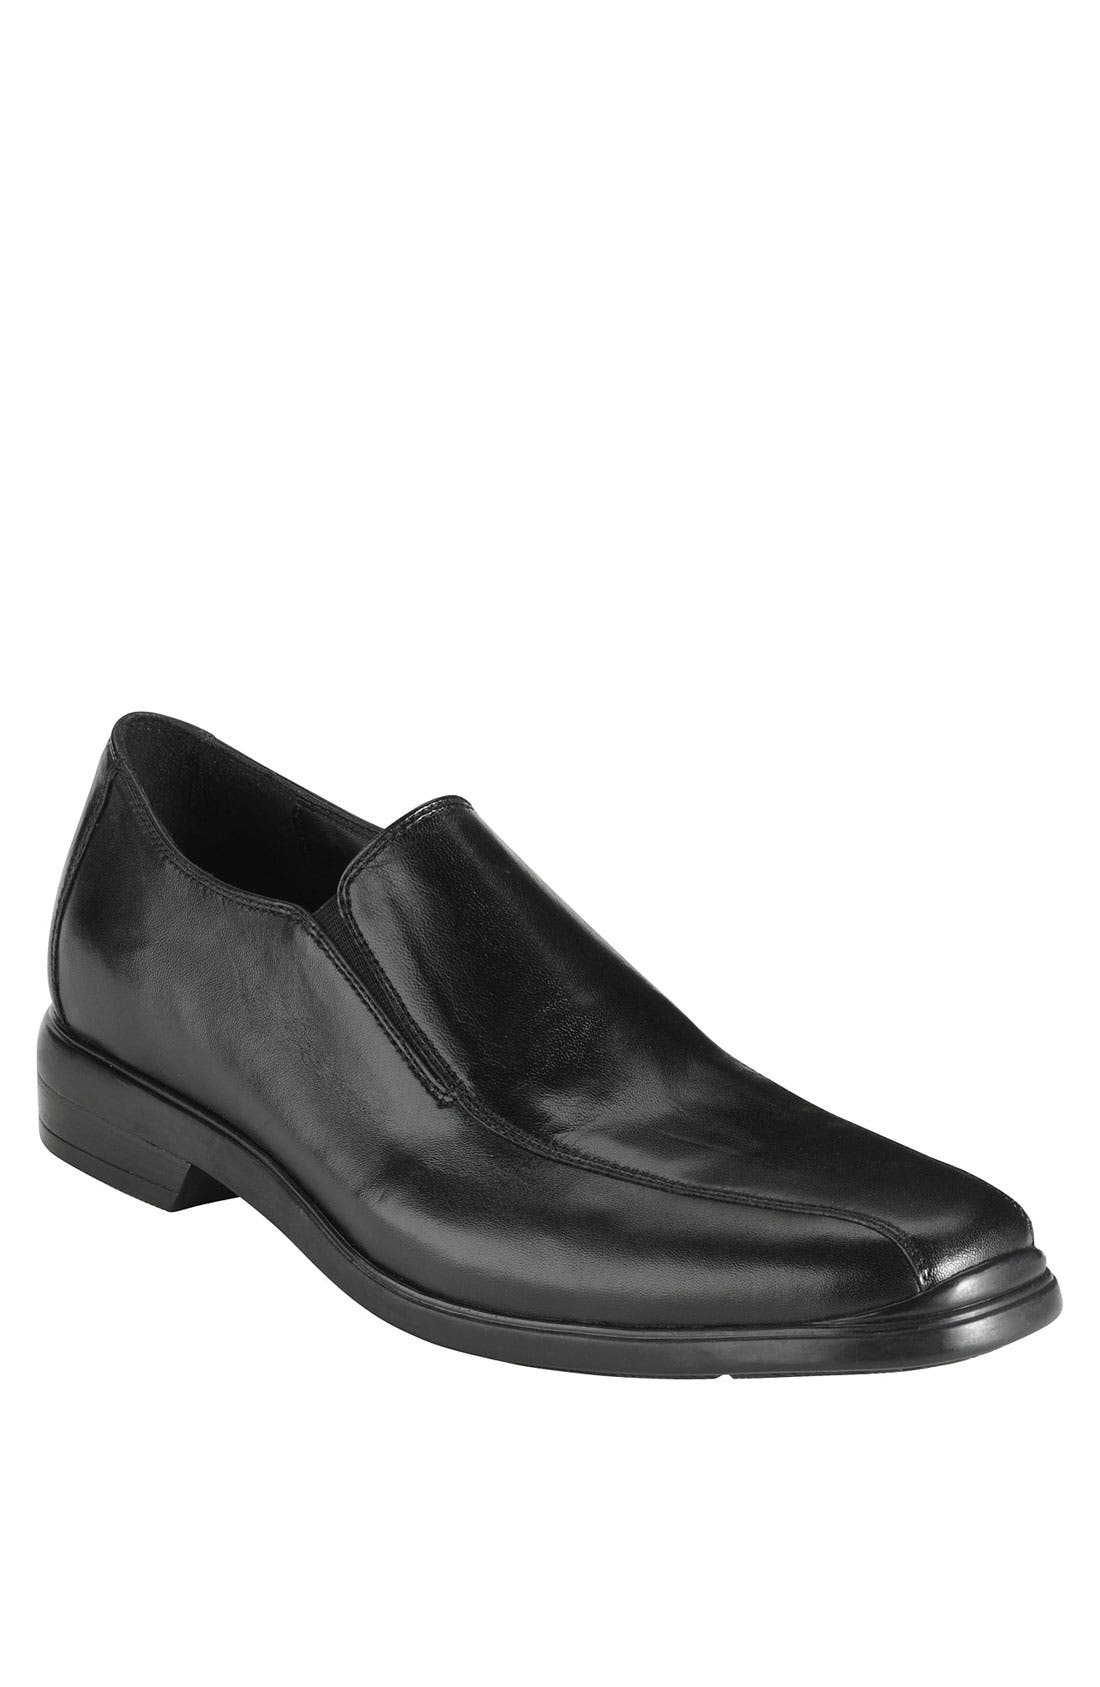 Main Image - Cole Haan 'Air Wallace' Slip-On